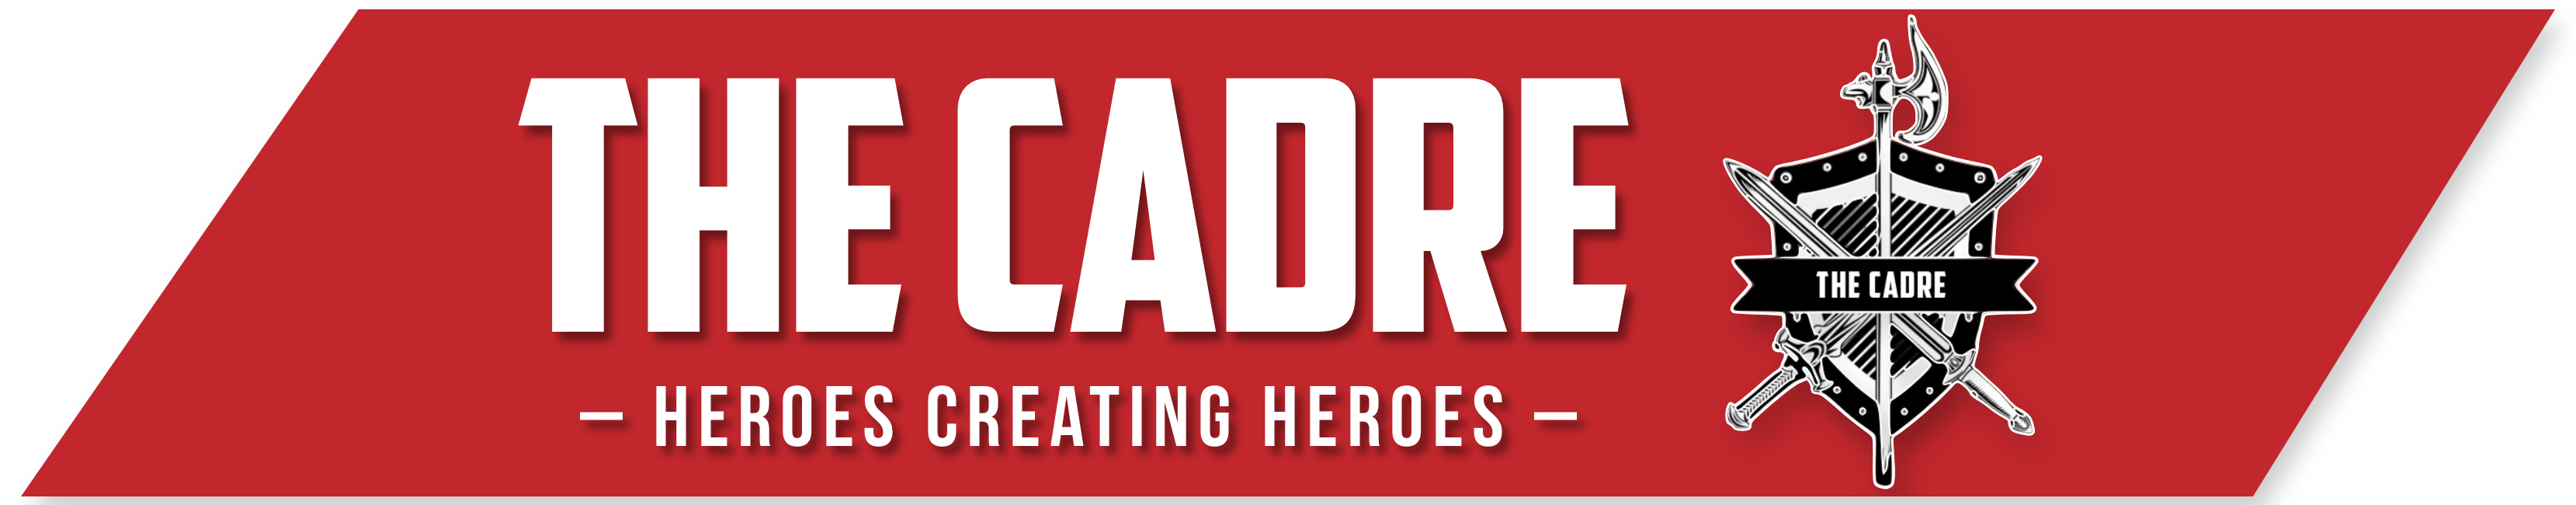 The Cadre ⚔️